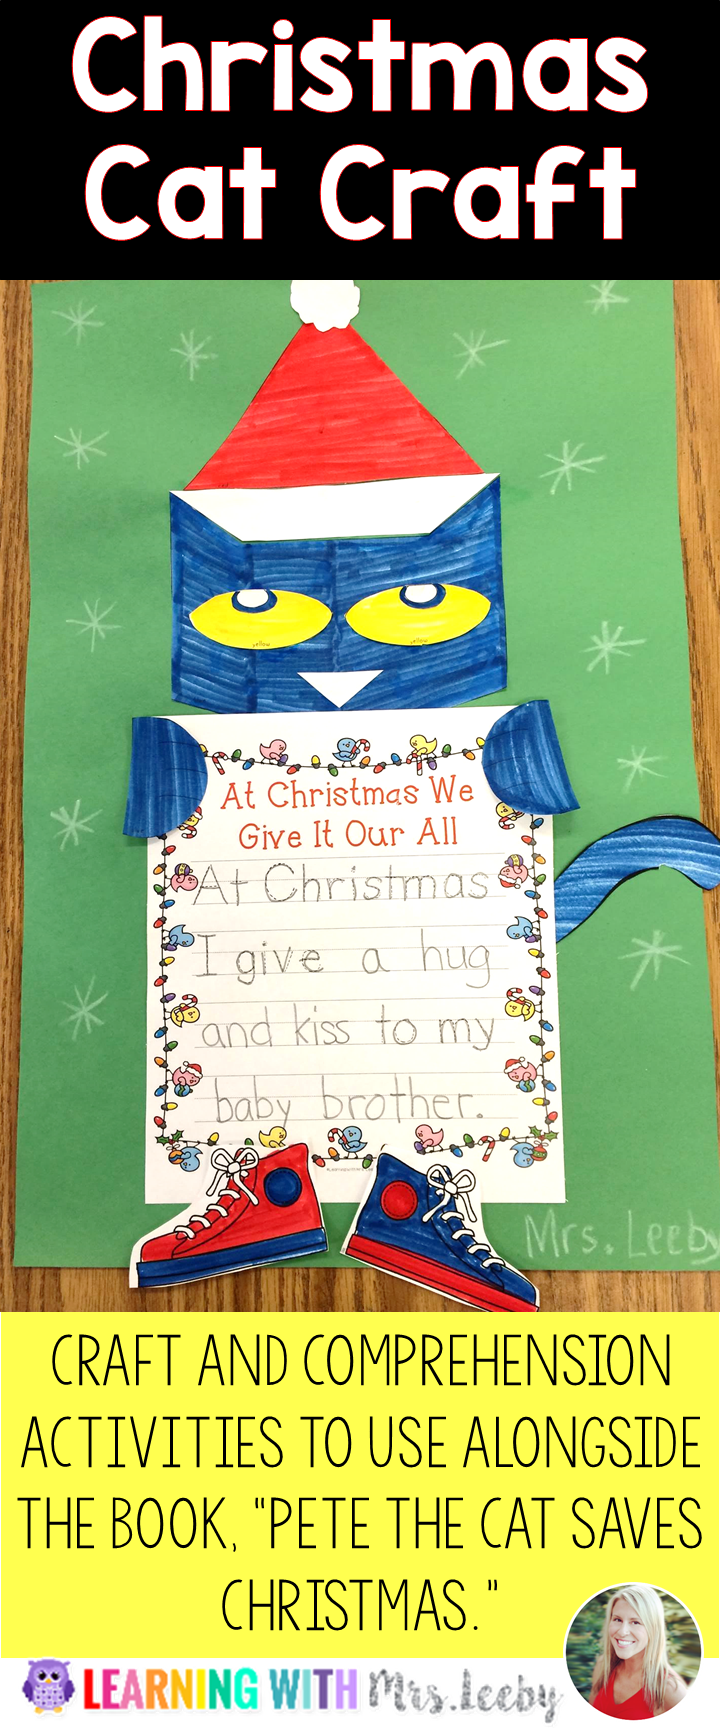 Pete The Cat Saves Christmas.Pete The Cat Saves Christmas Comprehension Activities K